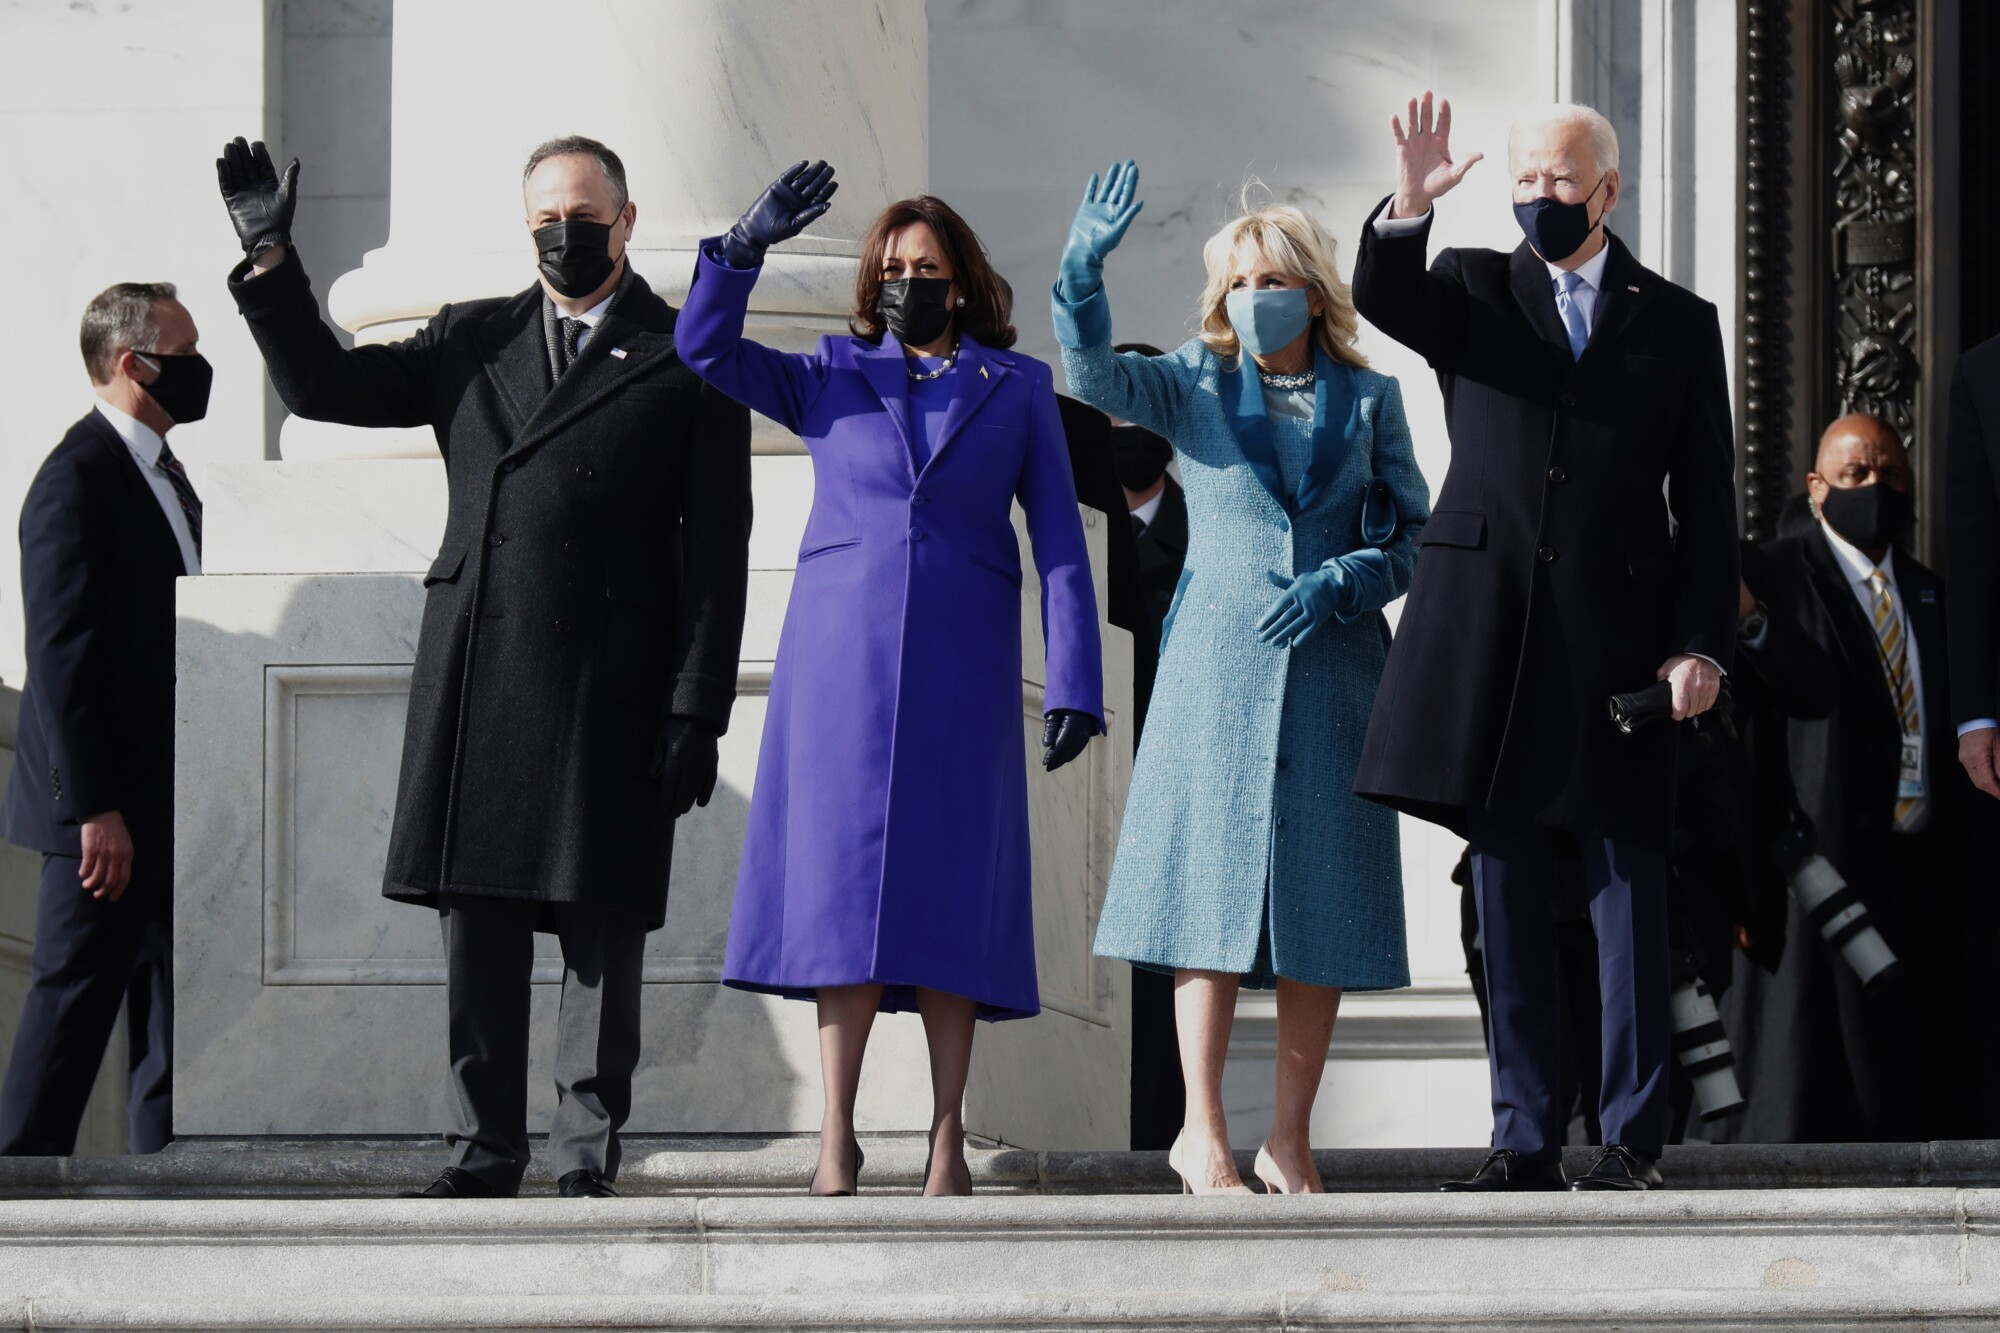 Photos: Joe Biden's historic Inauguration Day - Los Angeles Times